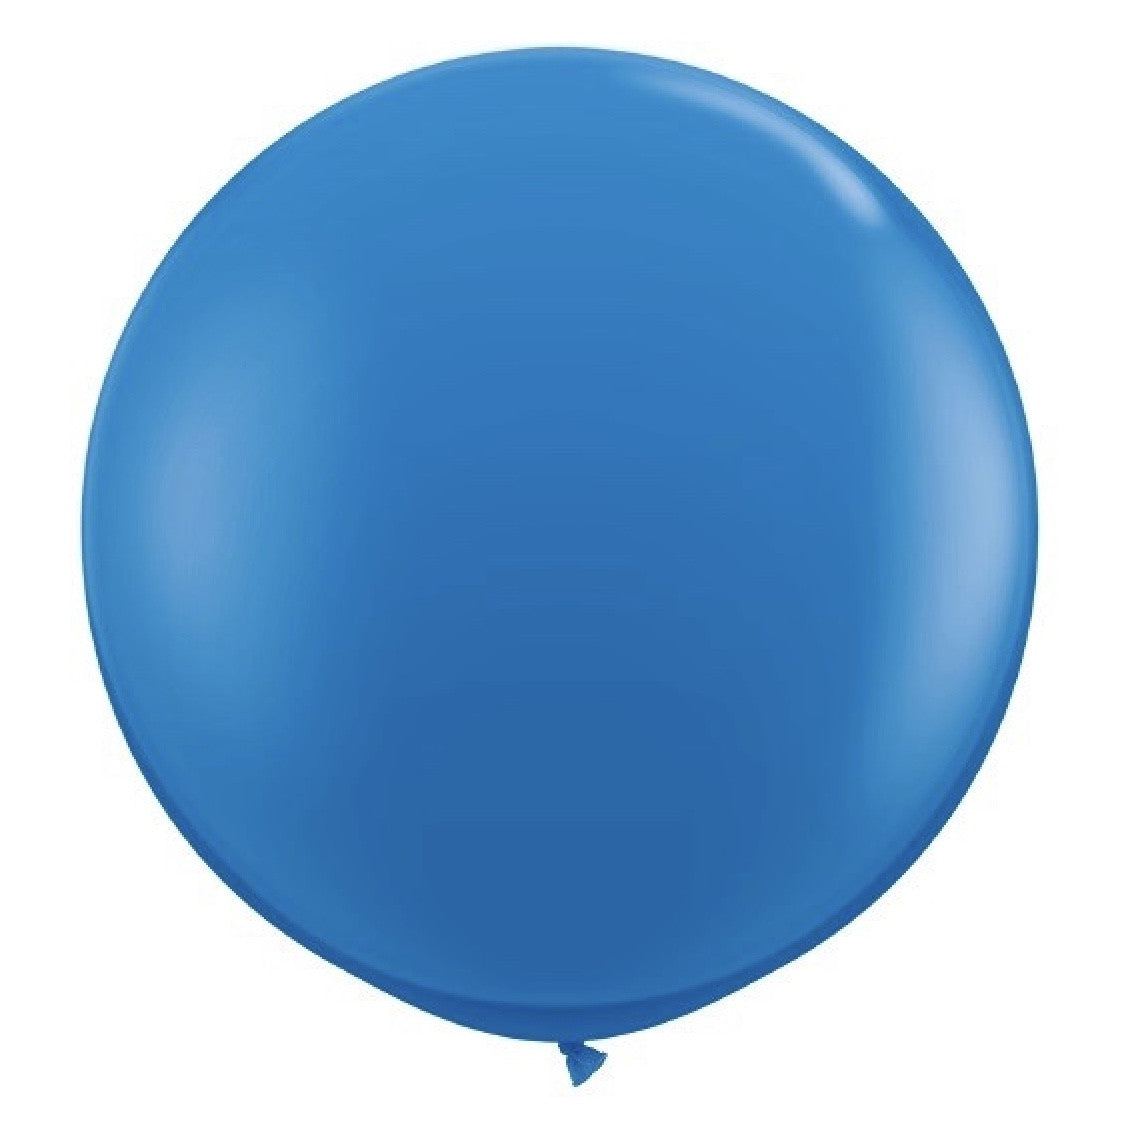 "Giant Round Balloon 36"" - Blue, SE-Surprize Enterprize, Putti Fine Furnishings"